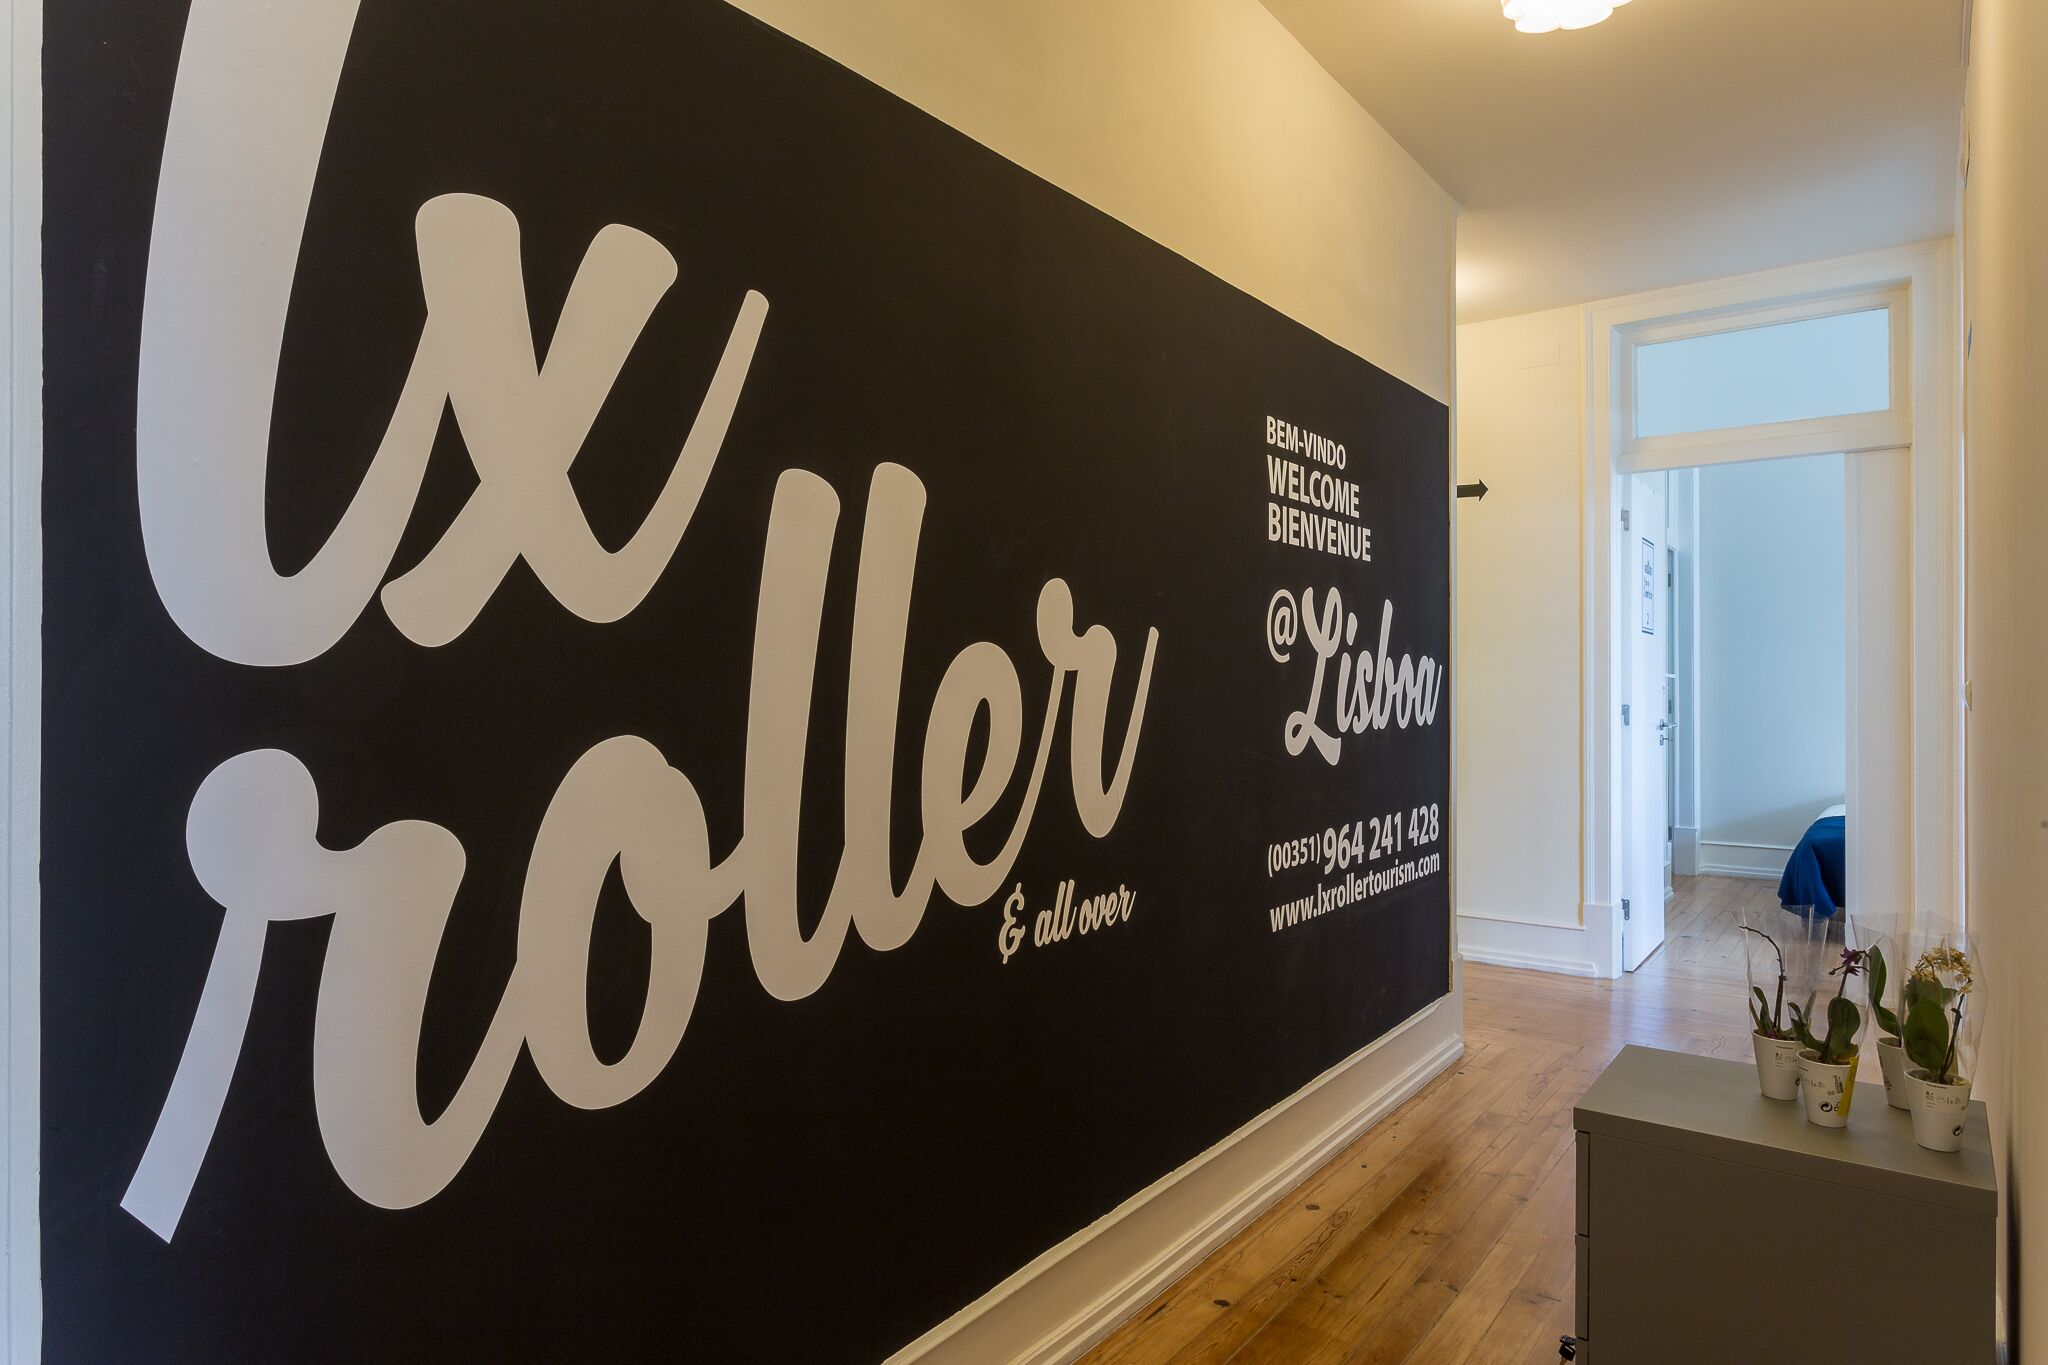 Lxroller Premium Guesthouse